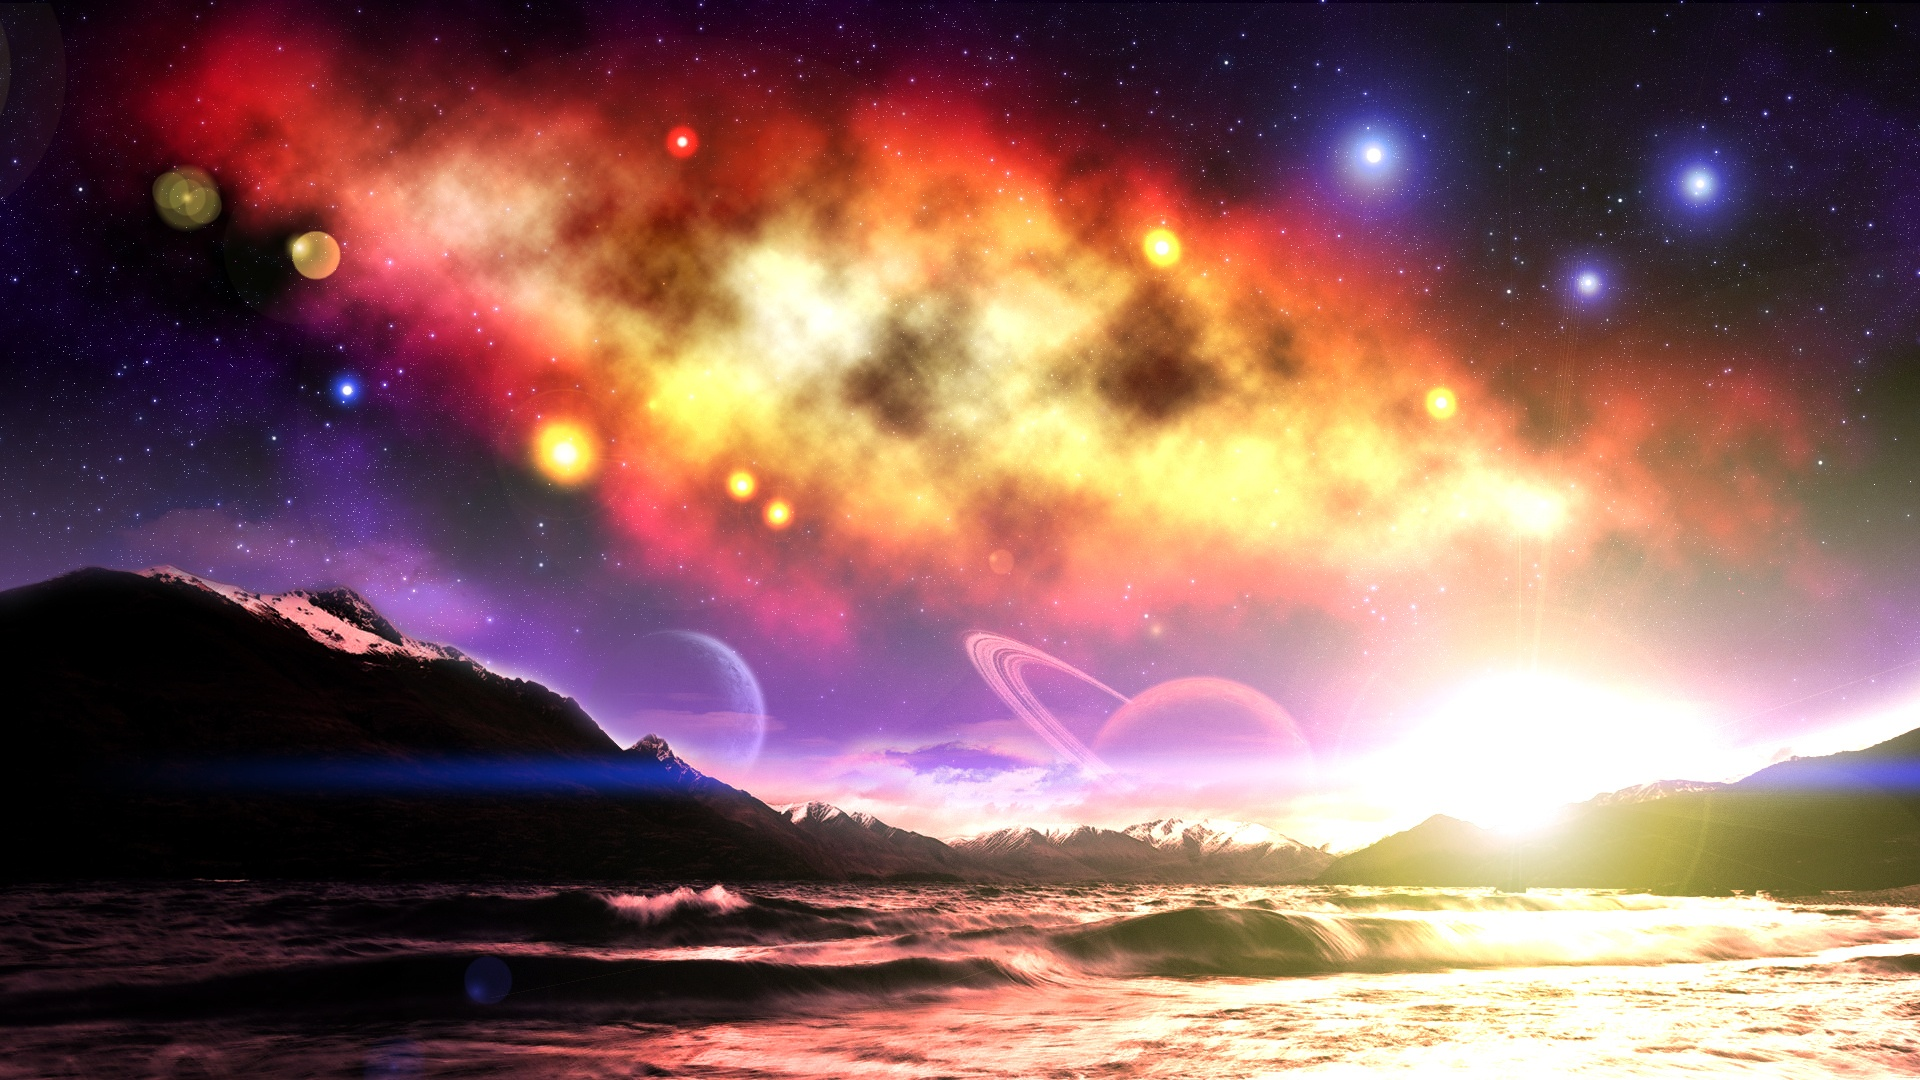 Wallpaper The Dream World Of The Charming Sky 1920x1080